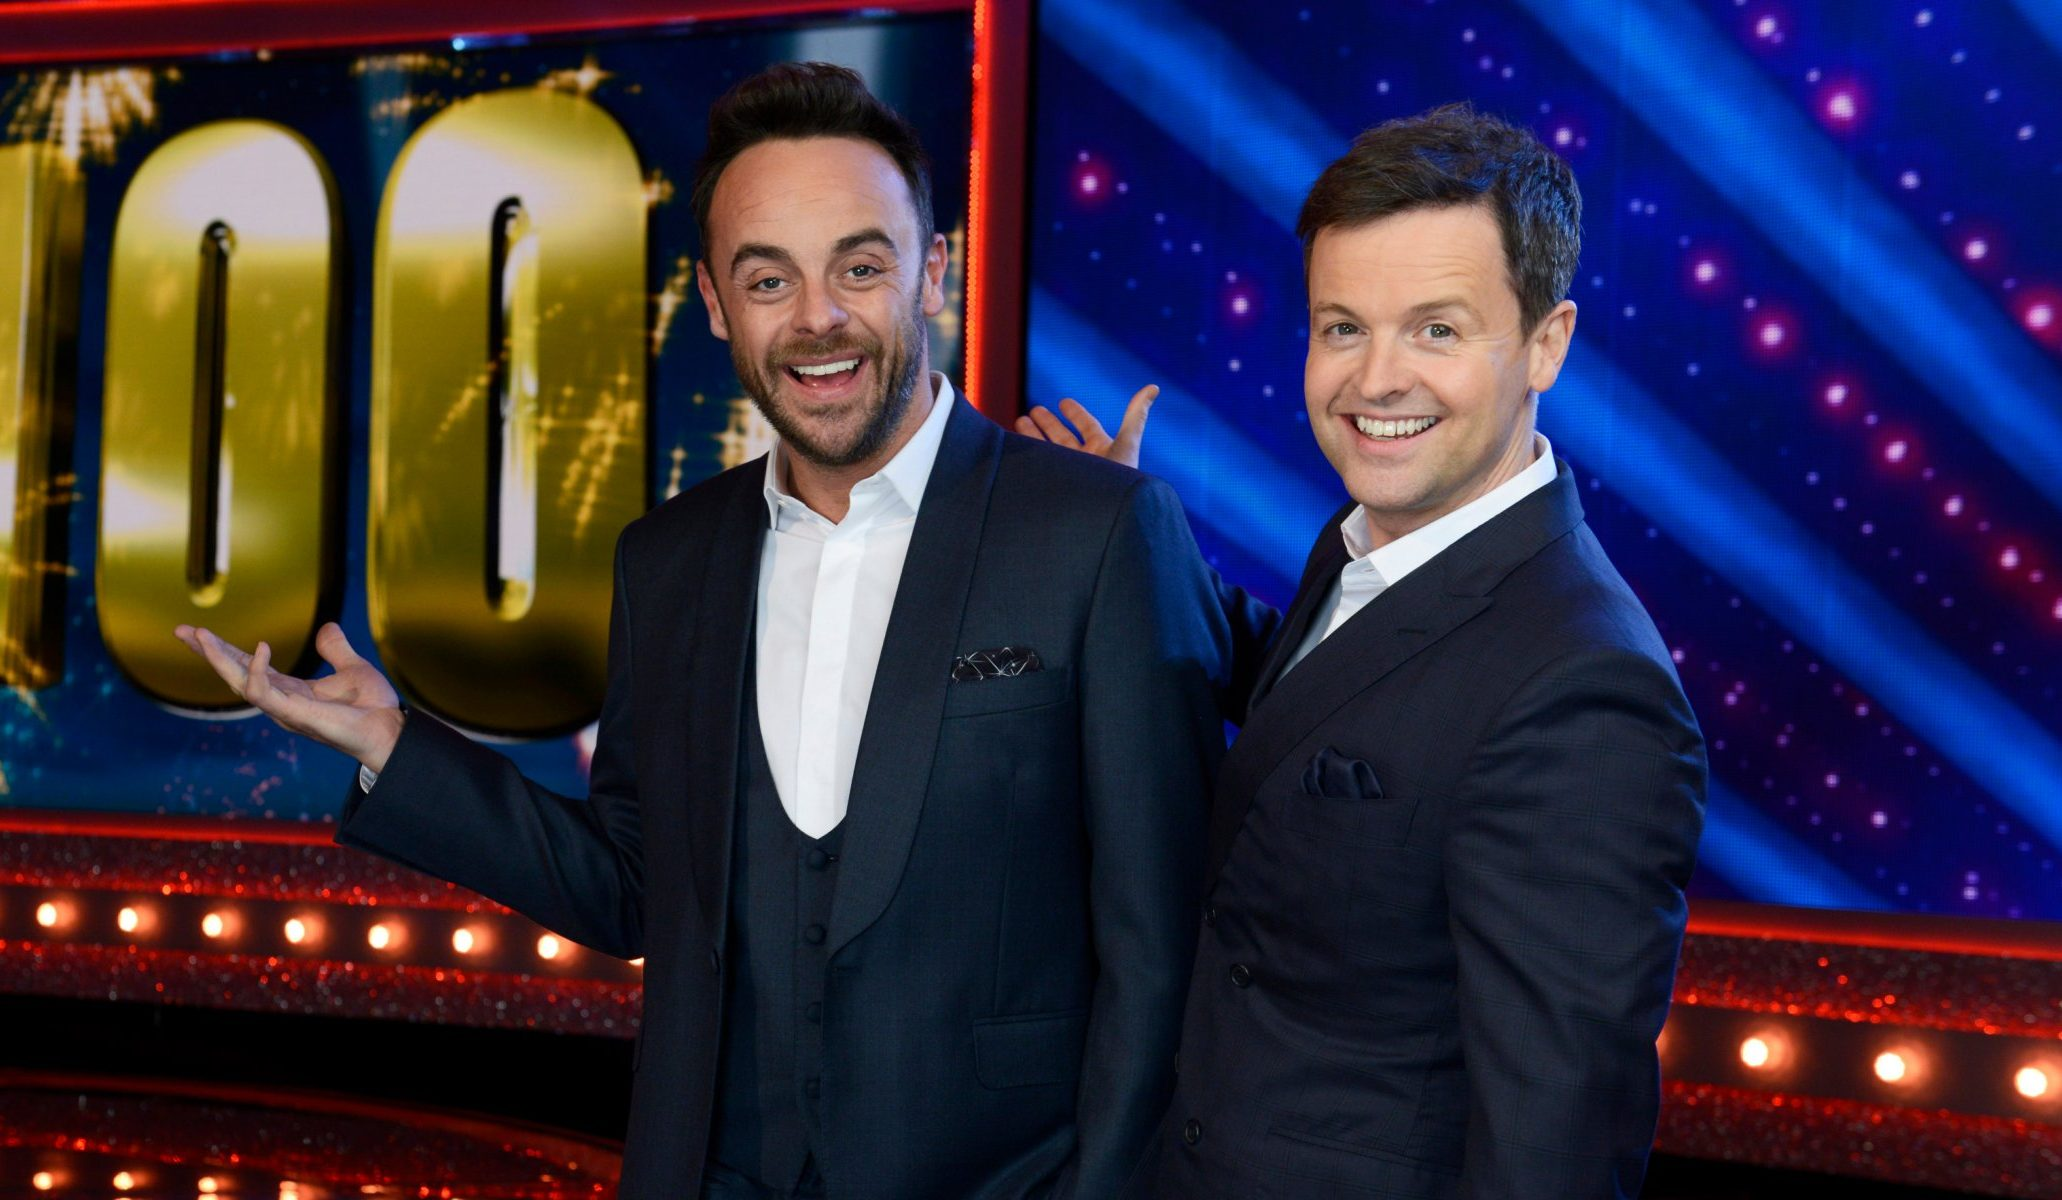 Who is hosting the Saturday Night Takeaway final with Dec and will Ant be back?